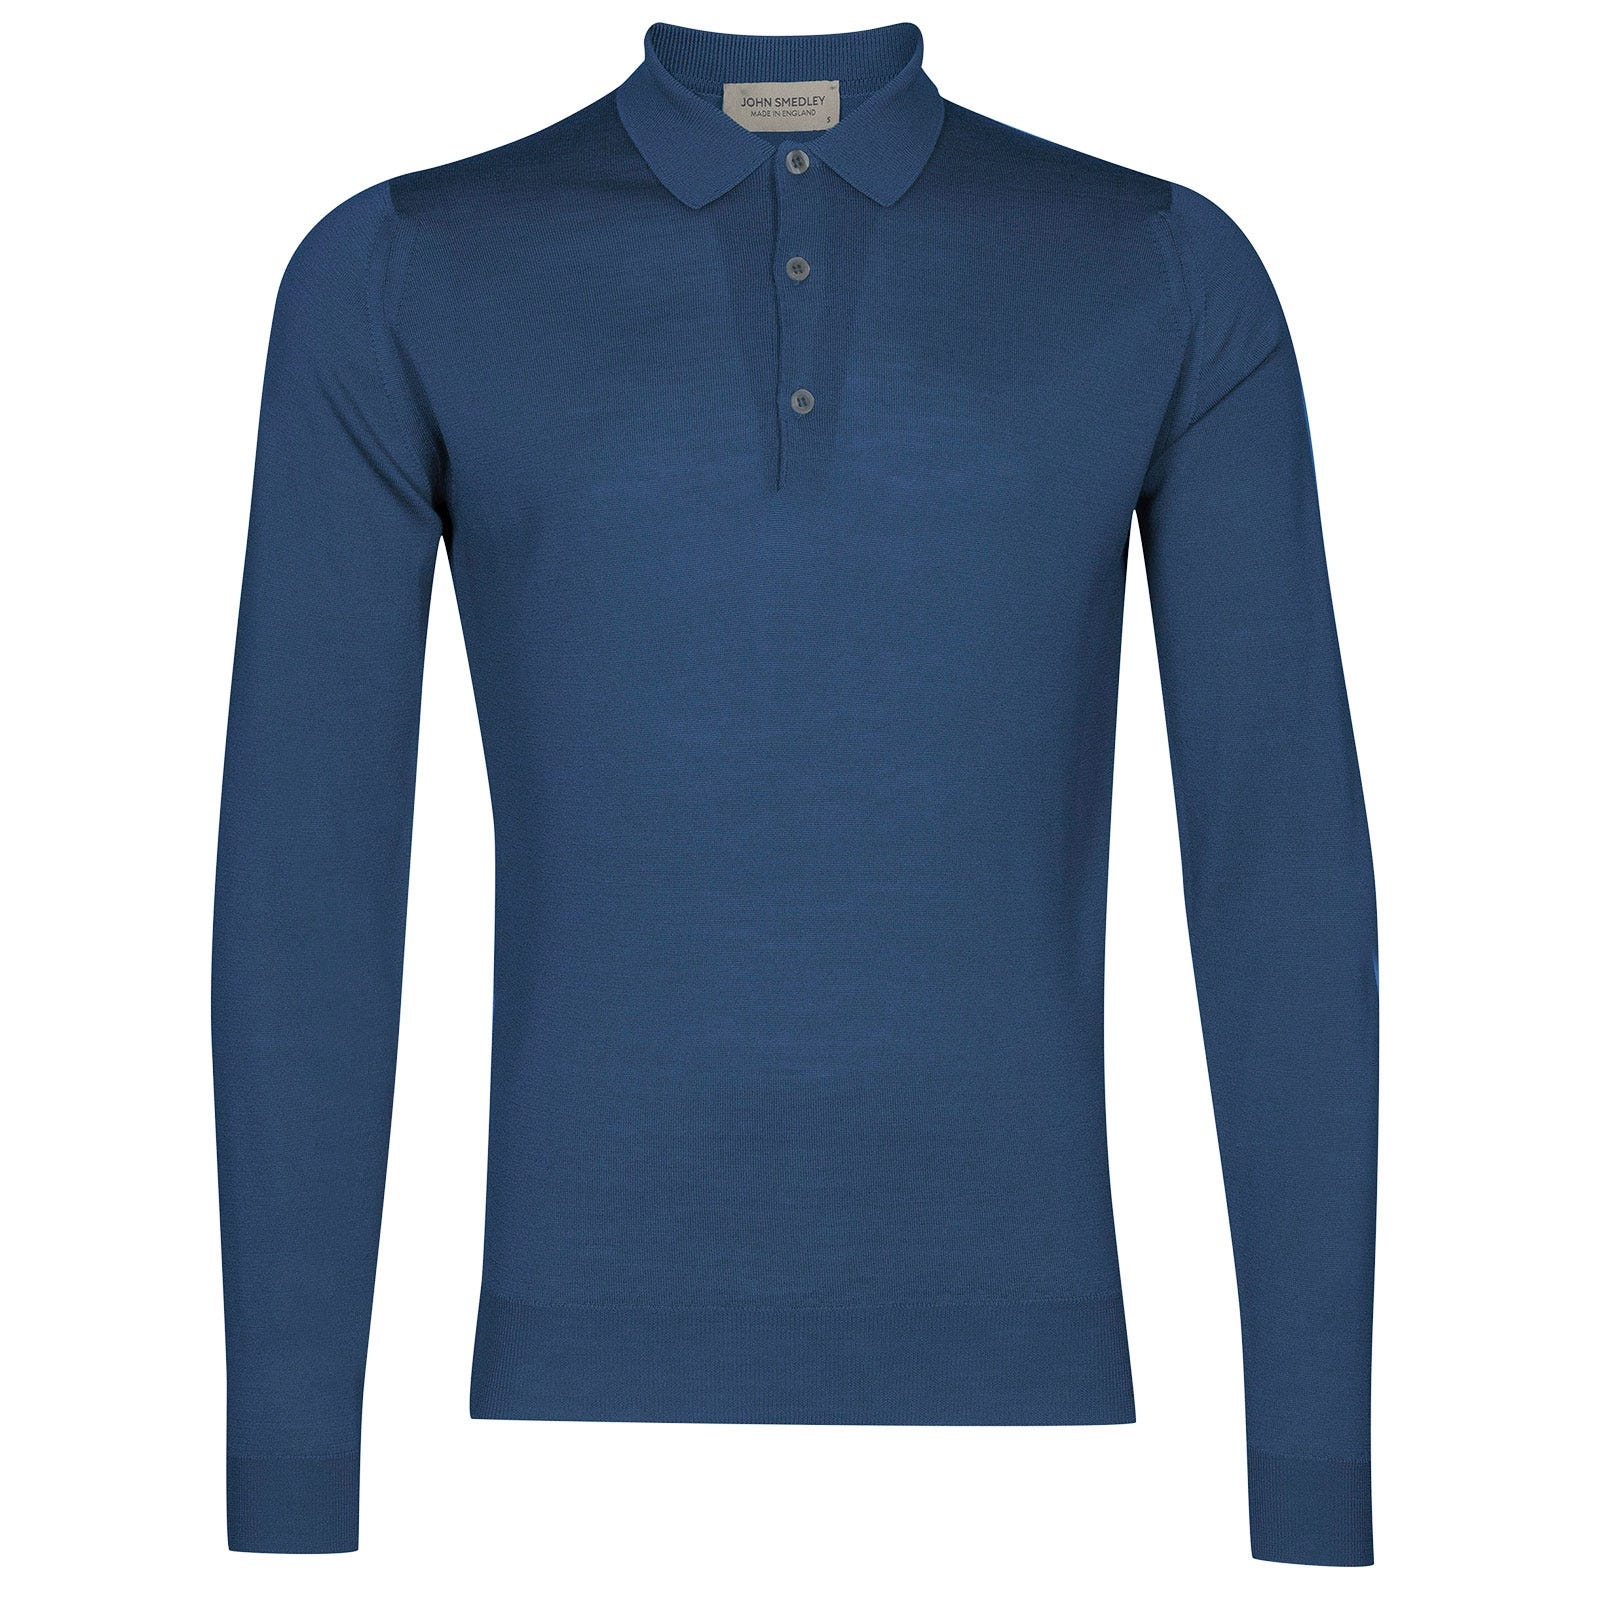 John Smedley belper Merino Wool Shirt in Derwent Blue-M